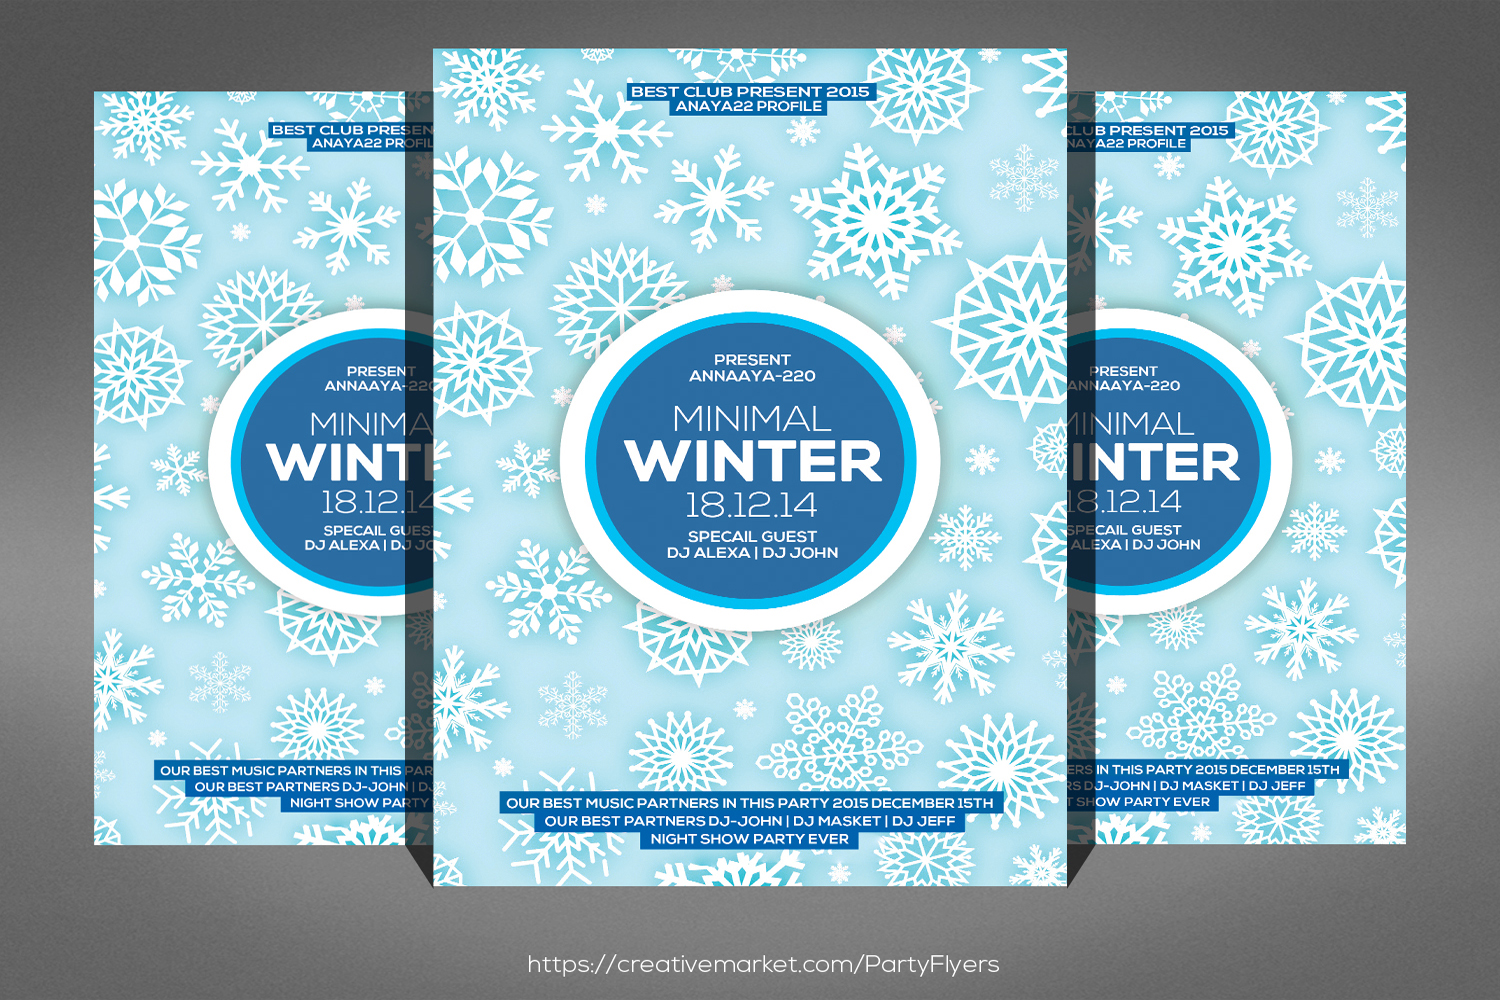 Minimal Winter Party Flyer example image 1